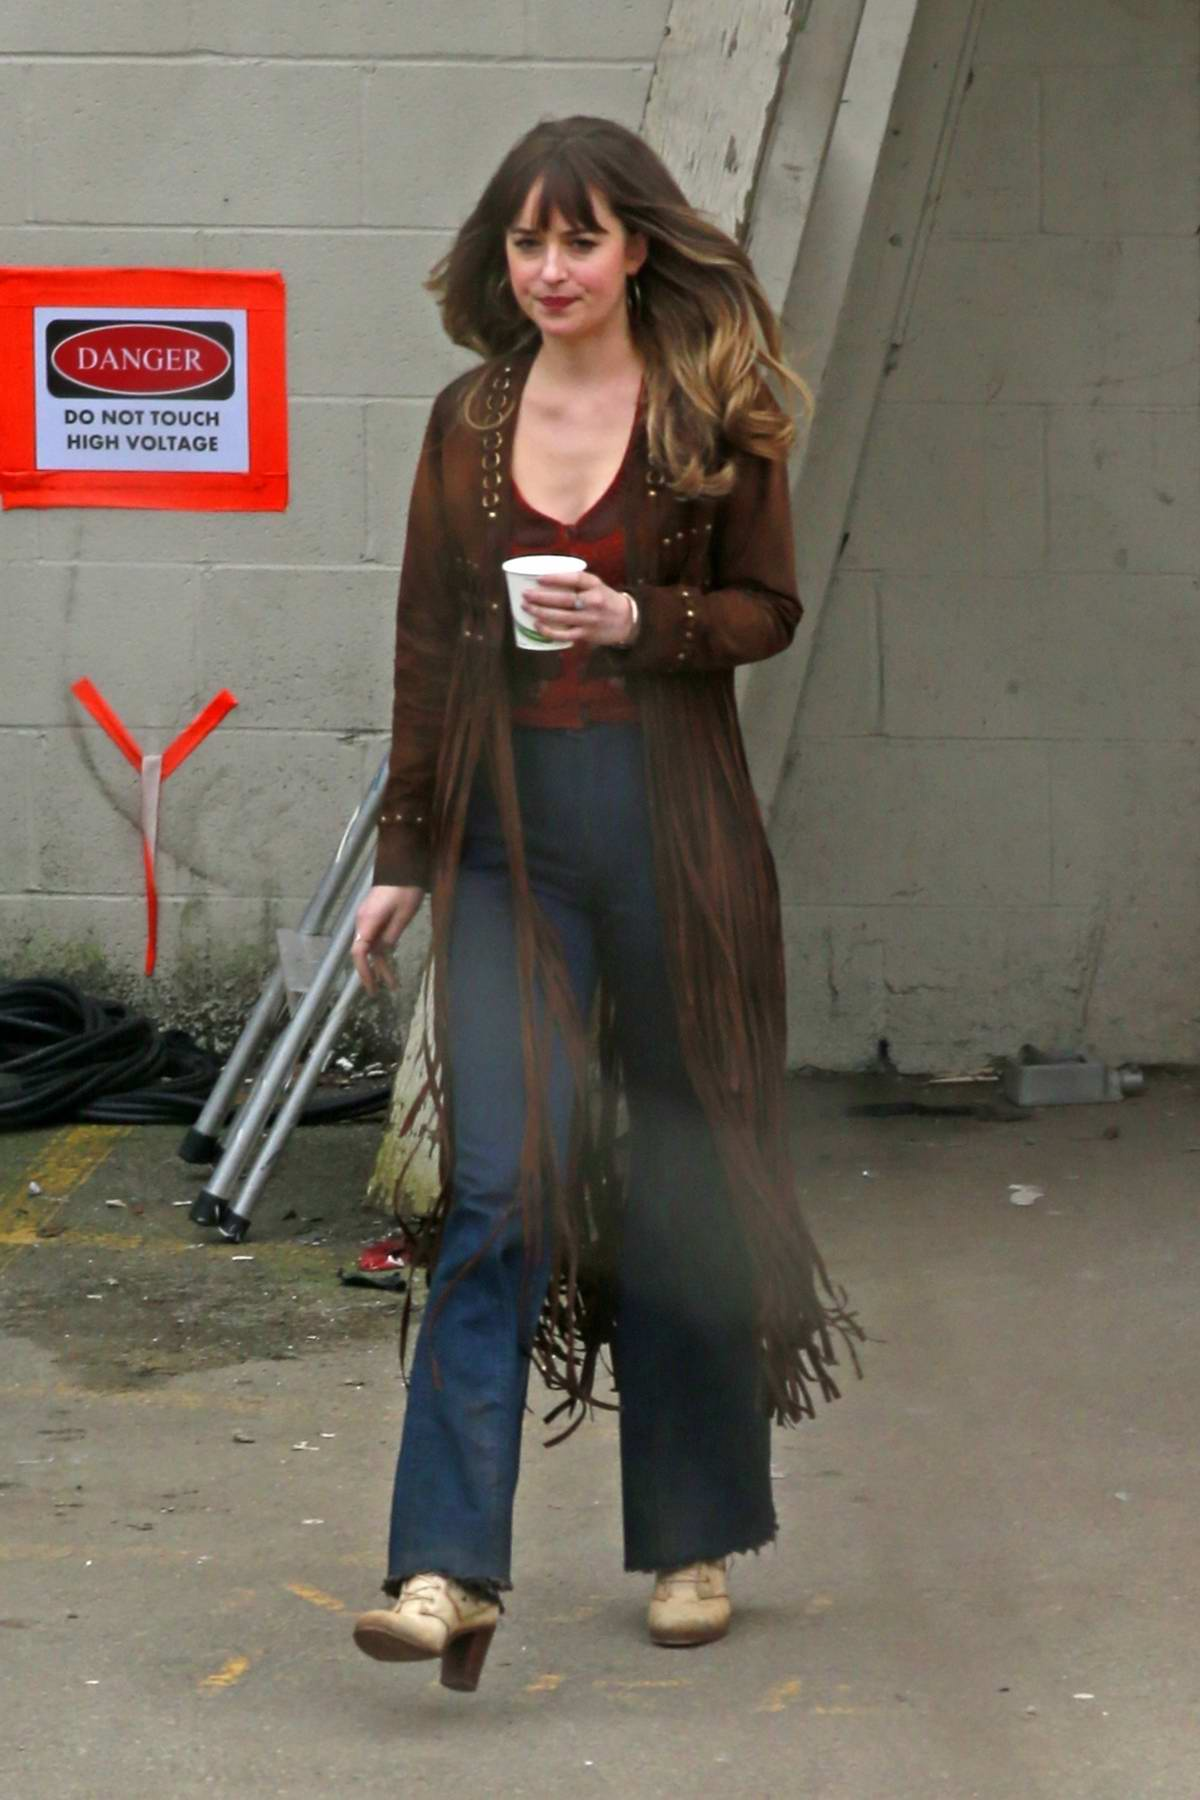 Dakota Johnson spotted on set of 'Bad Times at the El Royale' in Burnaby, British Columbia, Canada